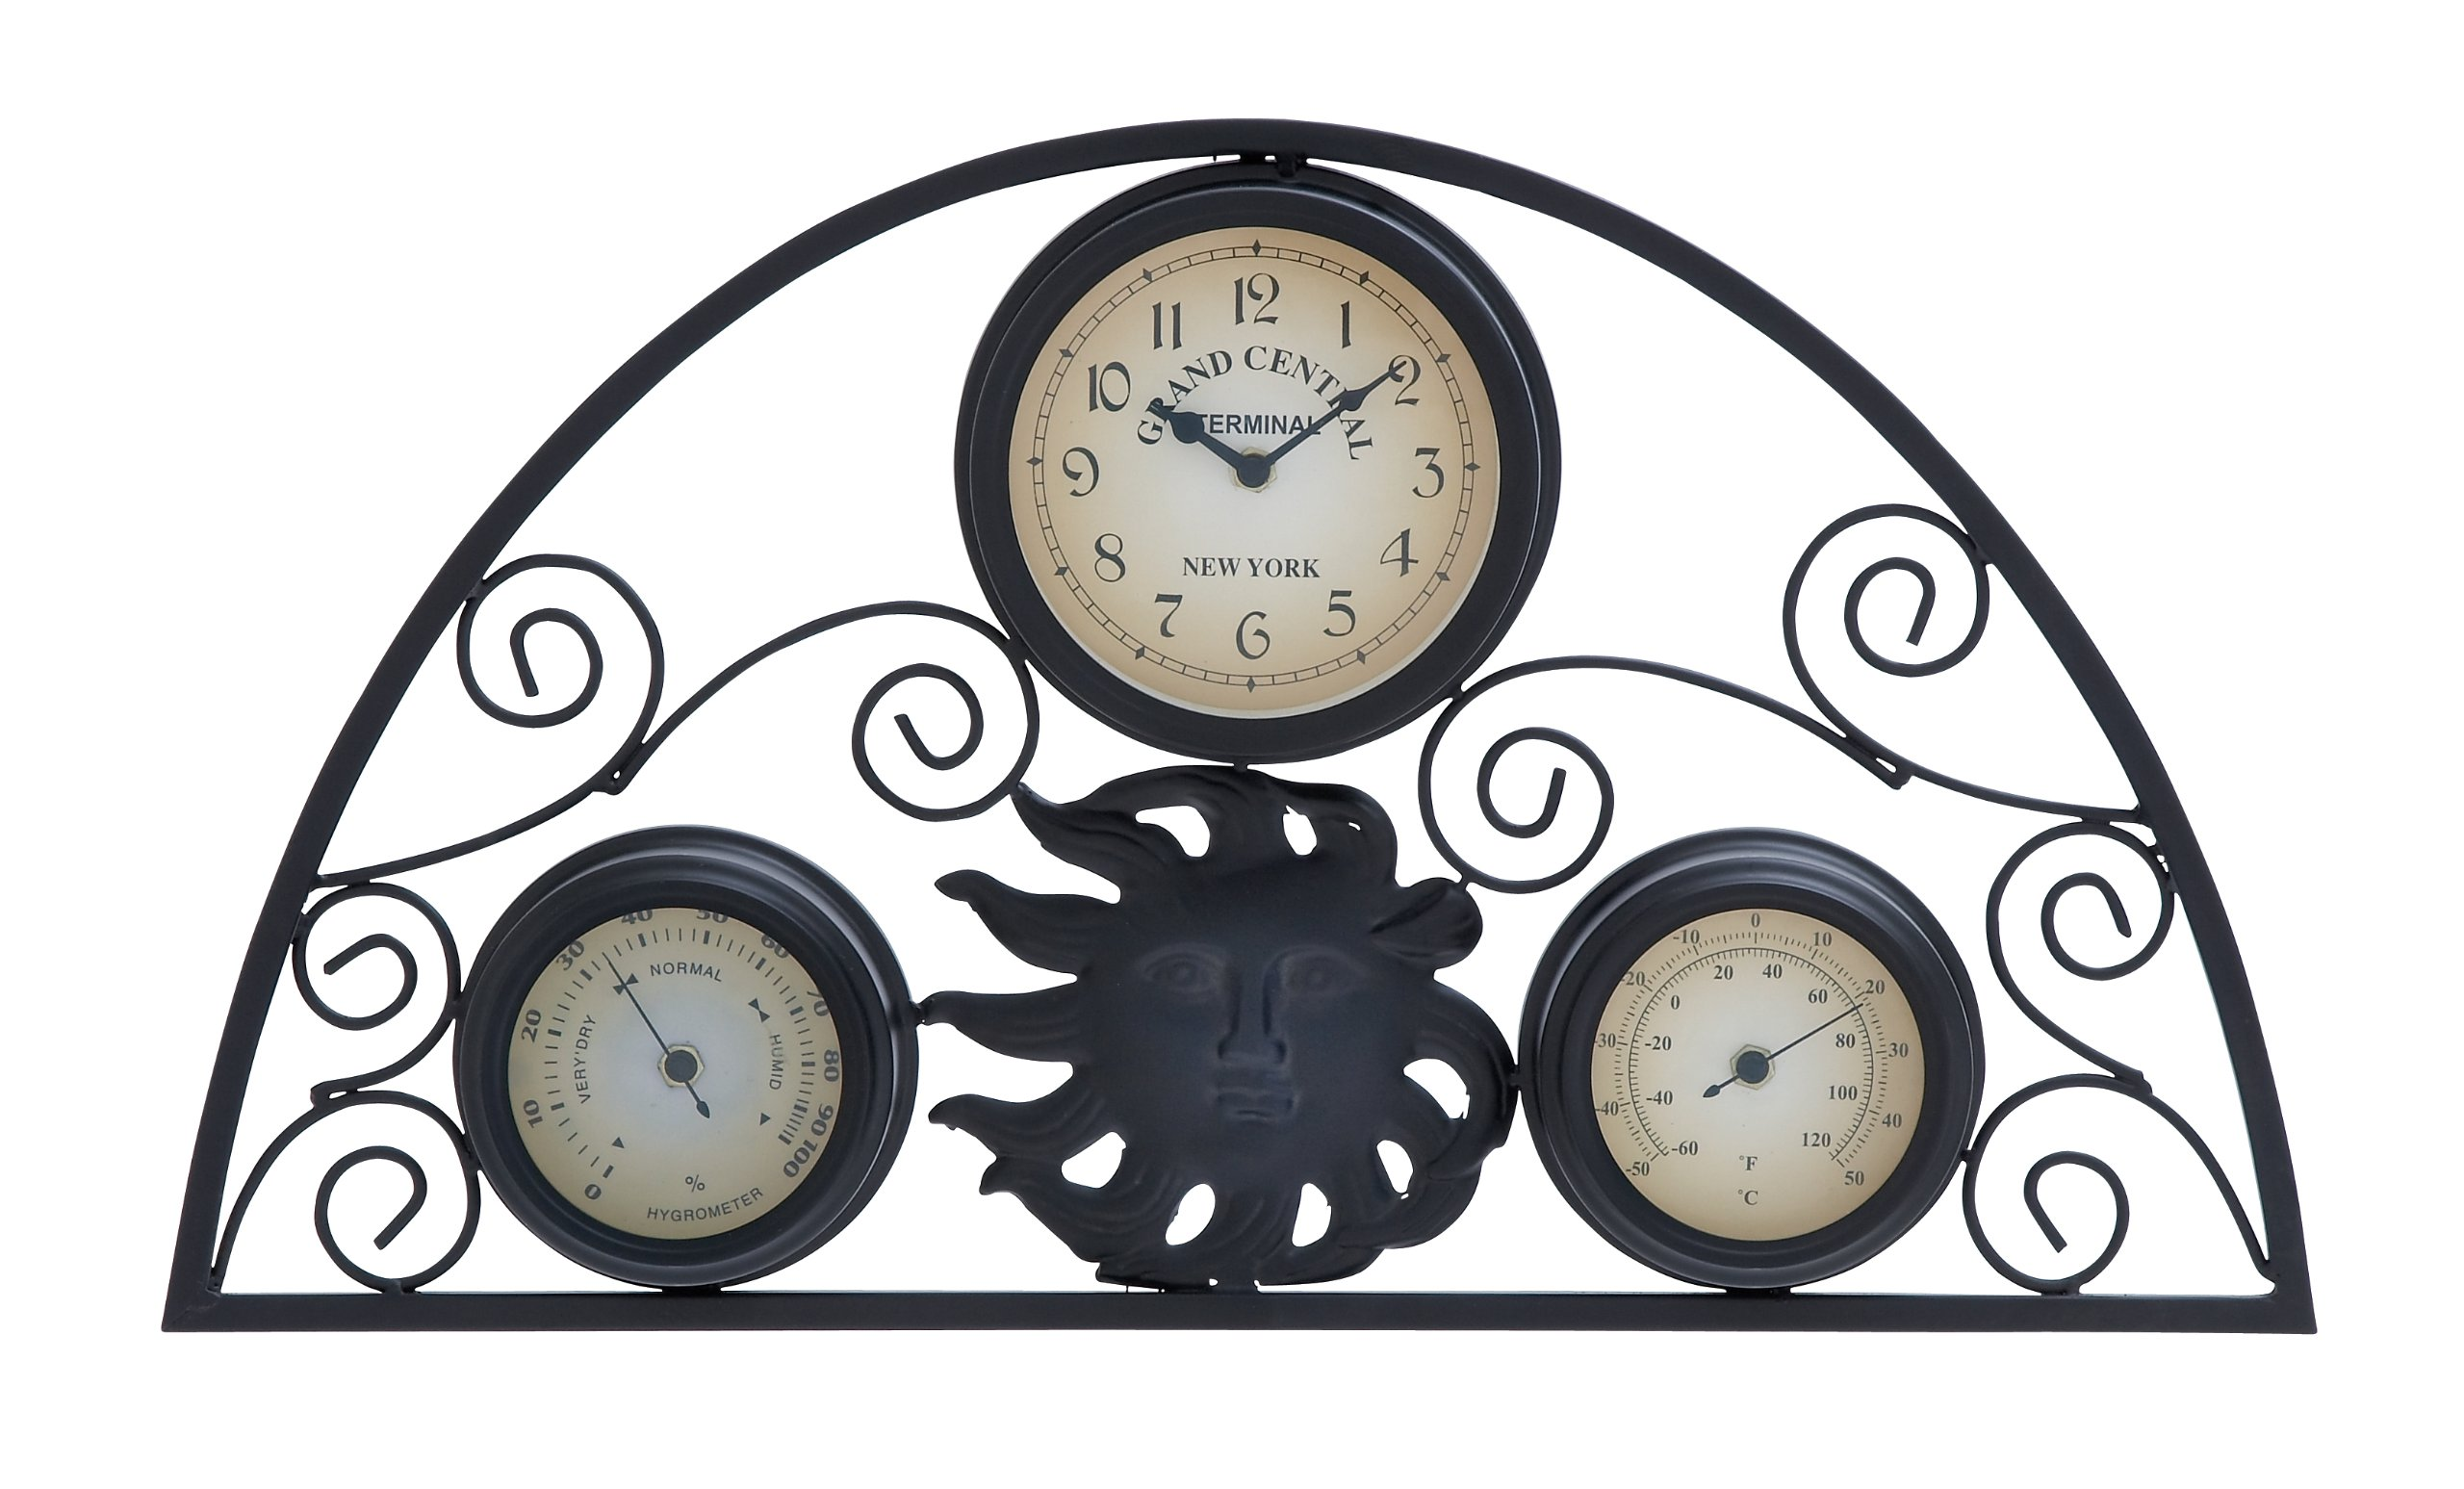 Plutus Brands Metal Clock Thermometer with Distinctive Pattern